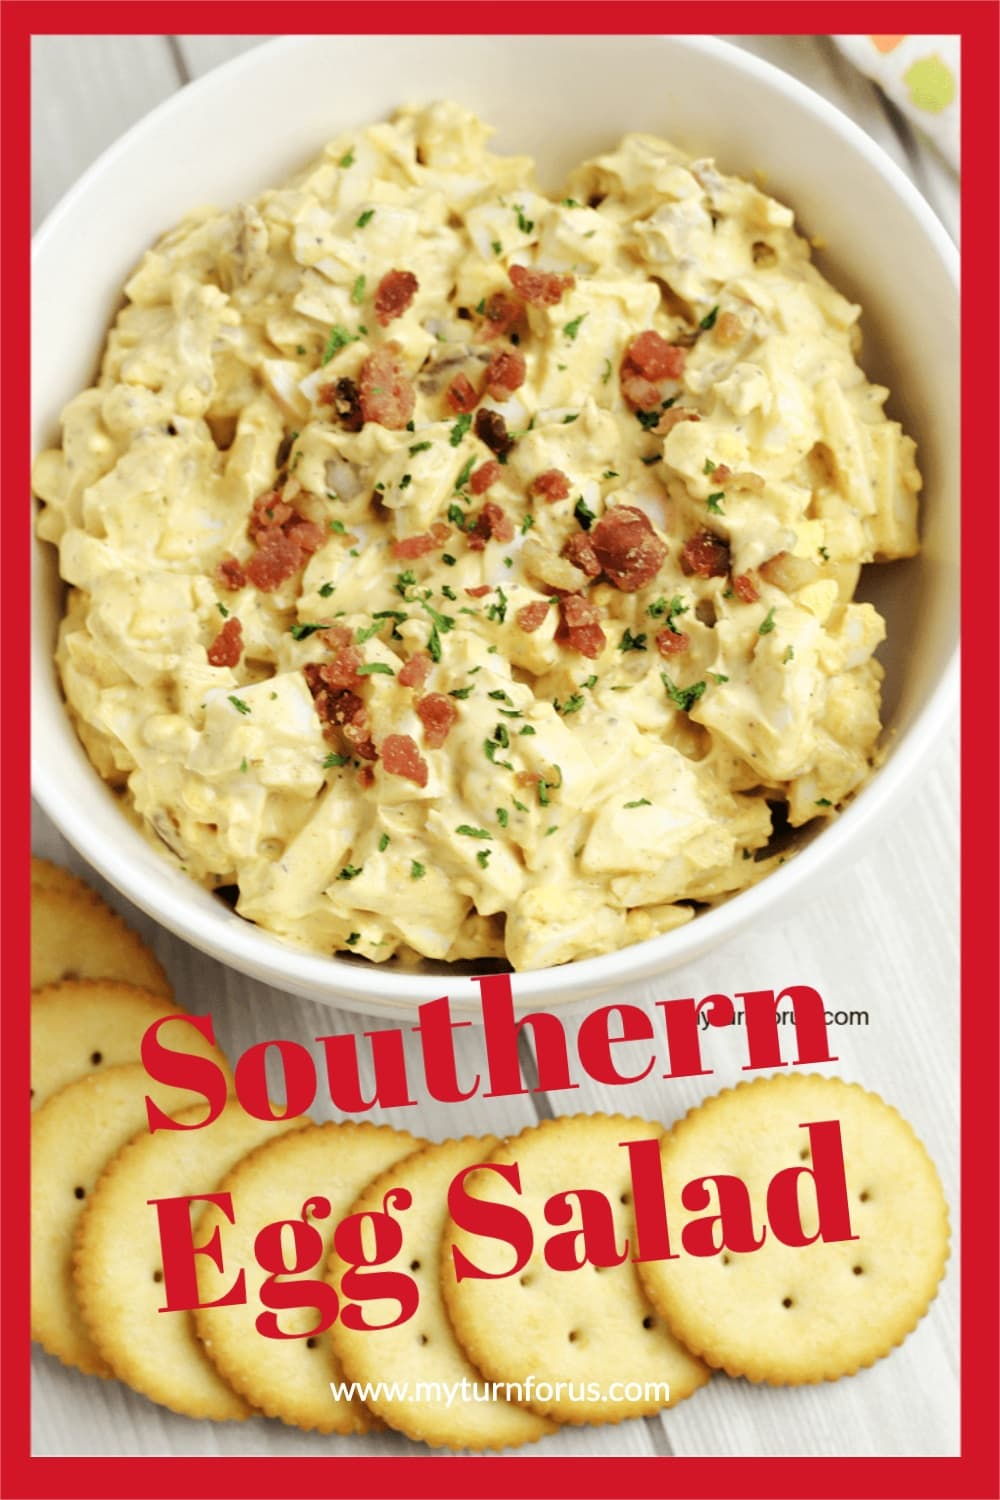 Southern Egg Salad with crackers